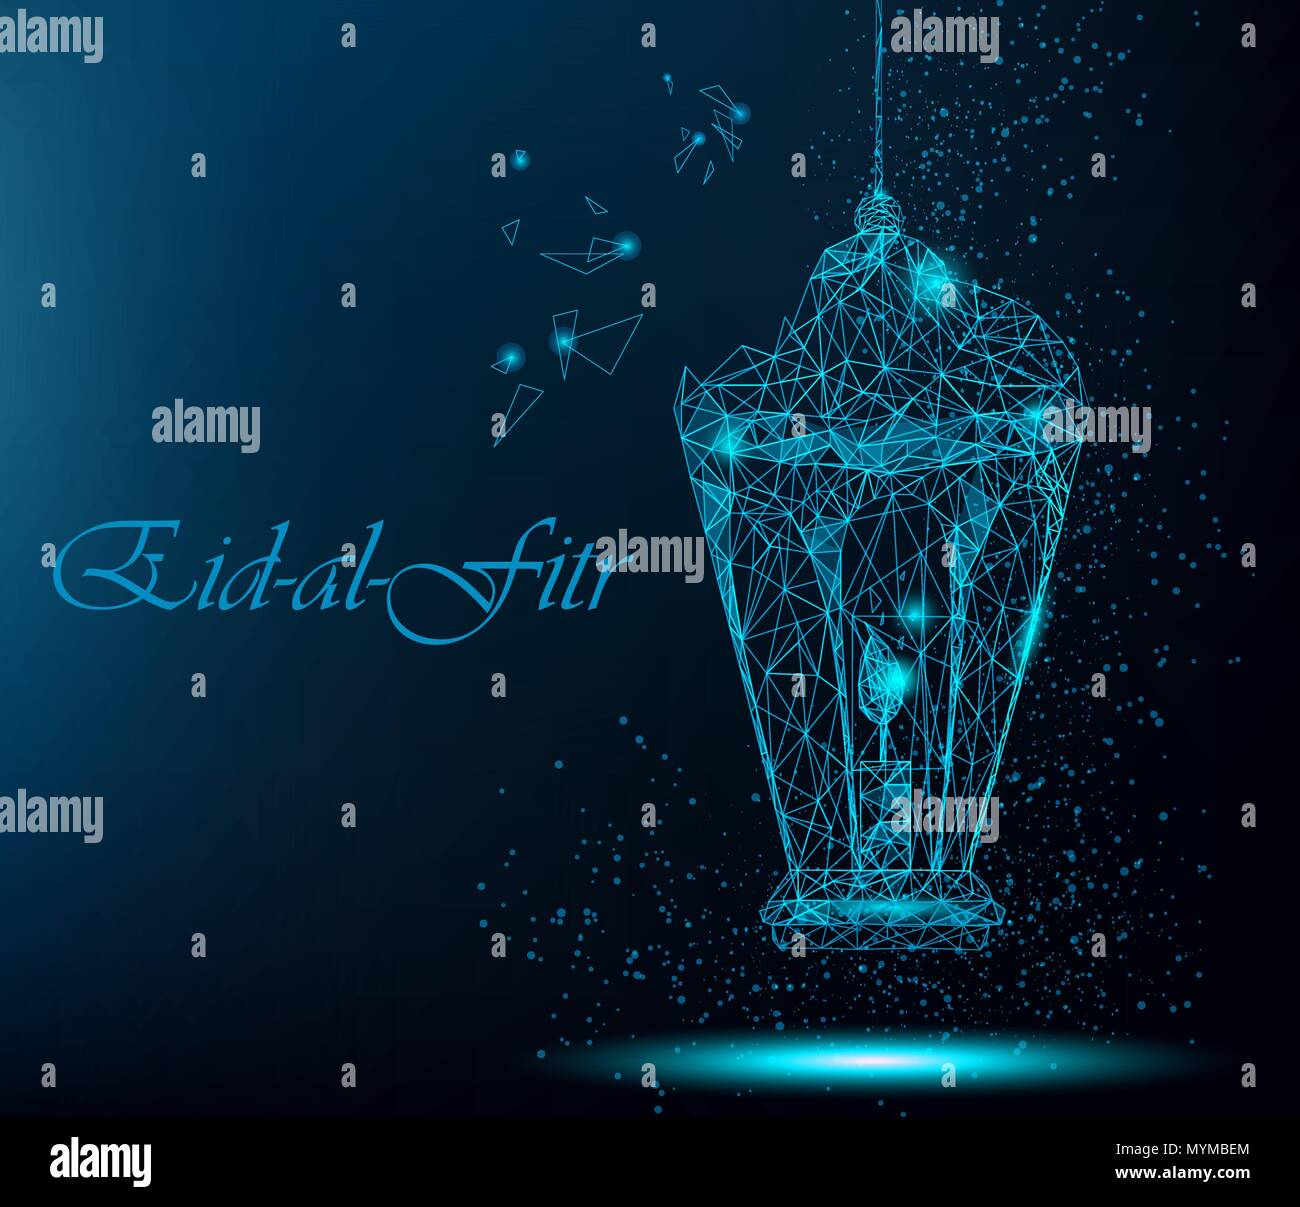 Eid al fitr beautiful greeting card with traditional arabic lantern eid al fitr beautiful greeting card with traditional arabic lantern polygonal art on blue background greeting card or invitation usable for eid mub m4hsunfo